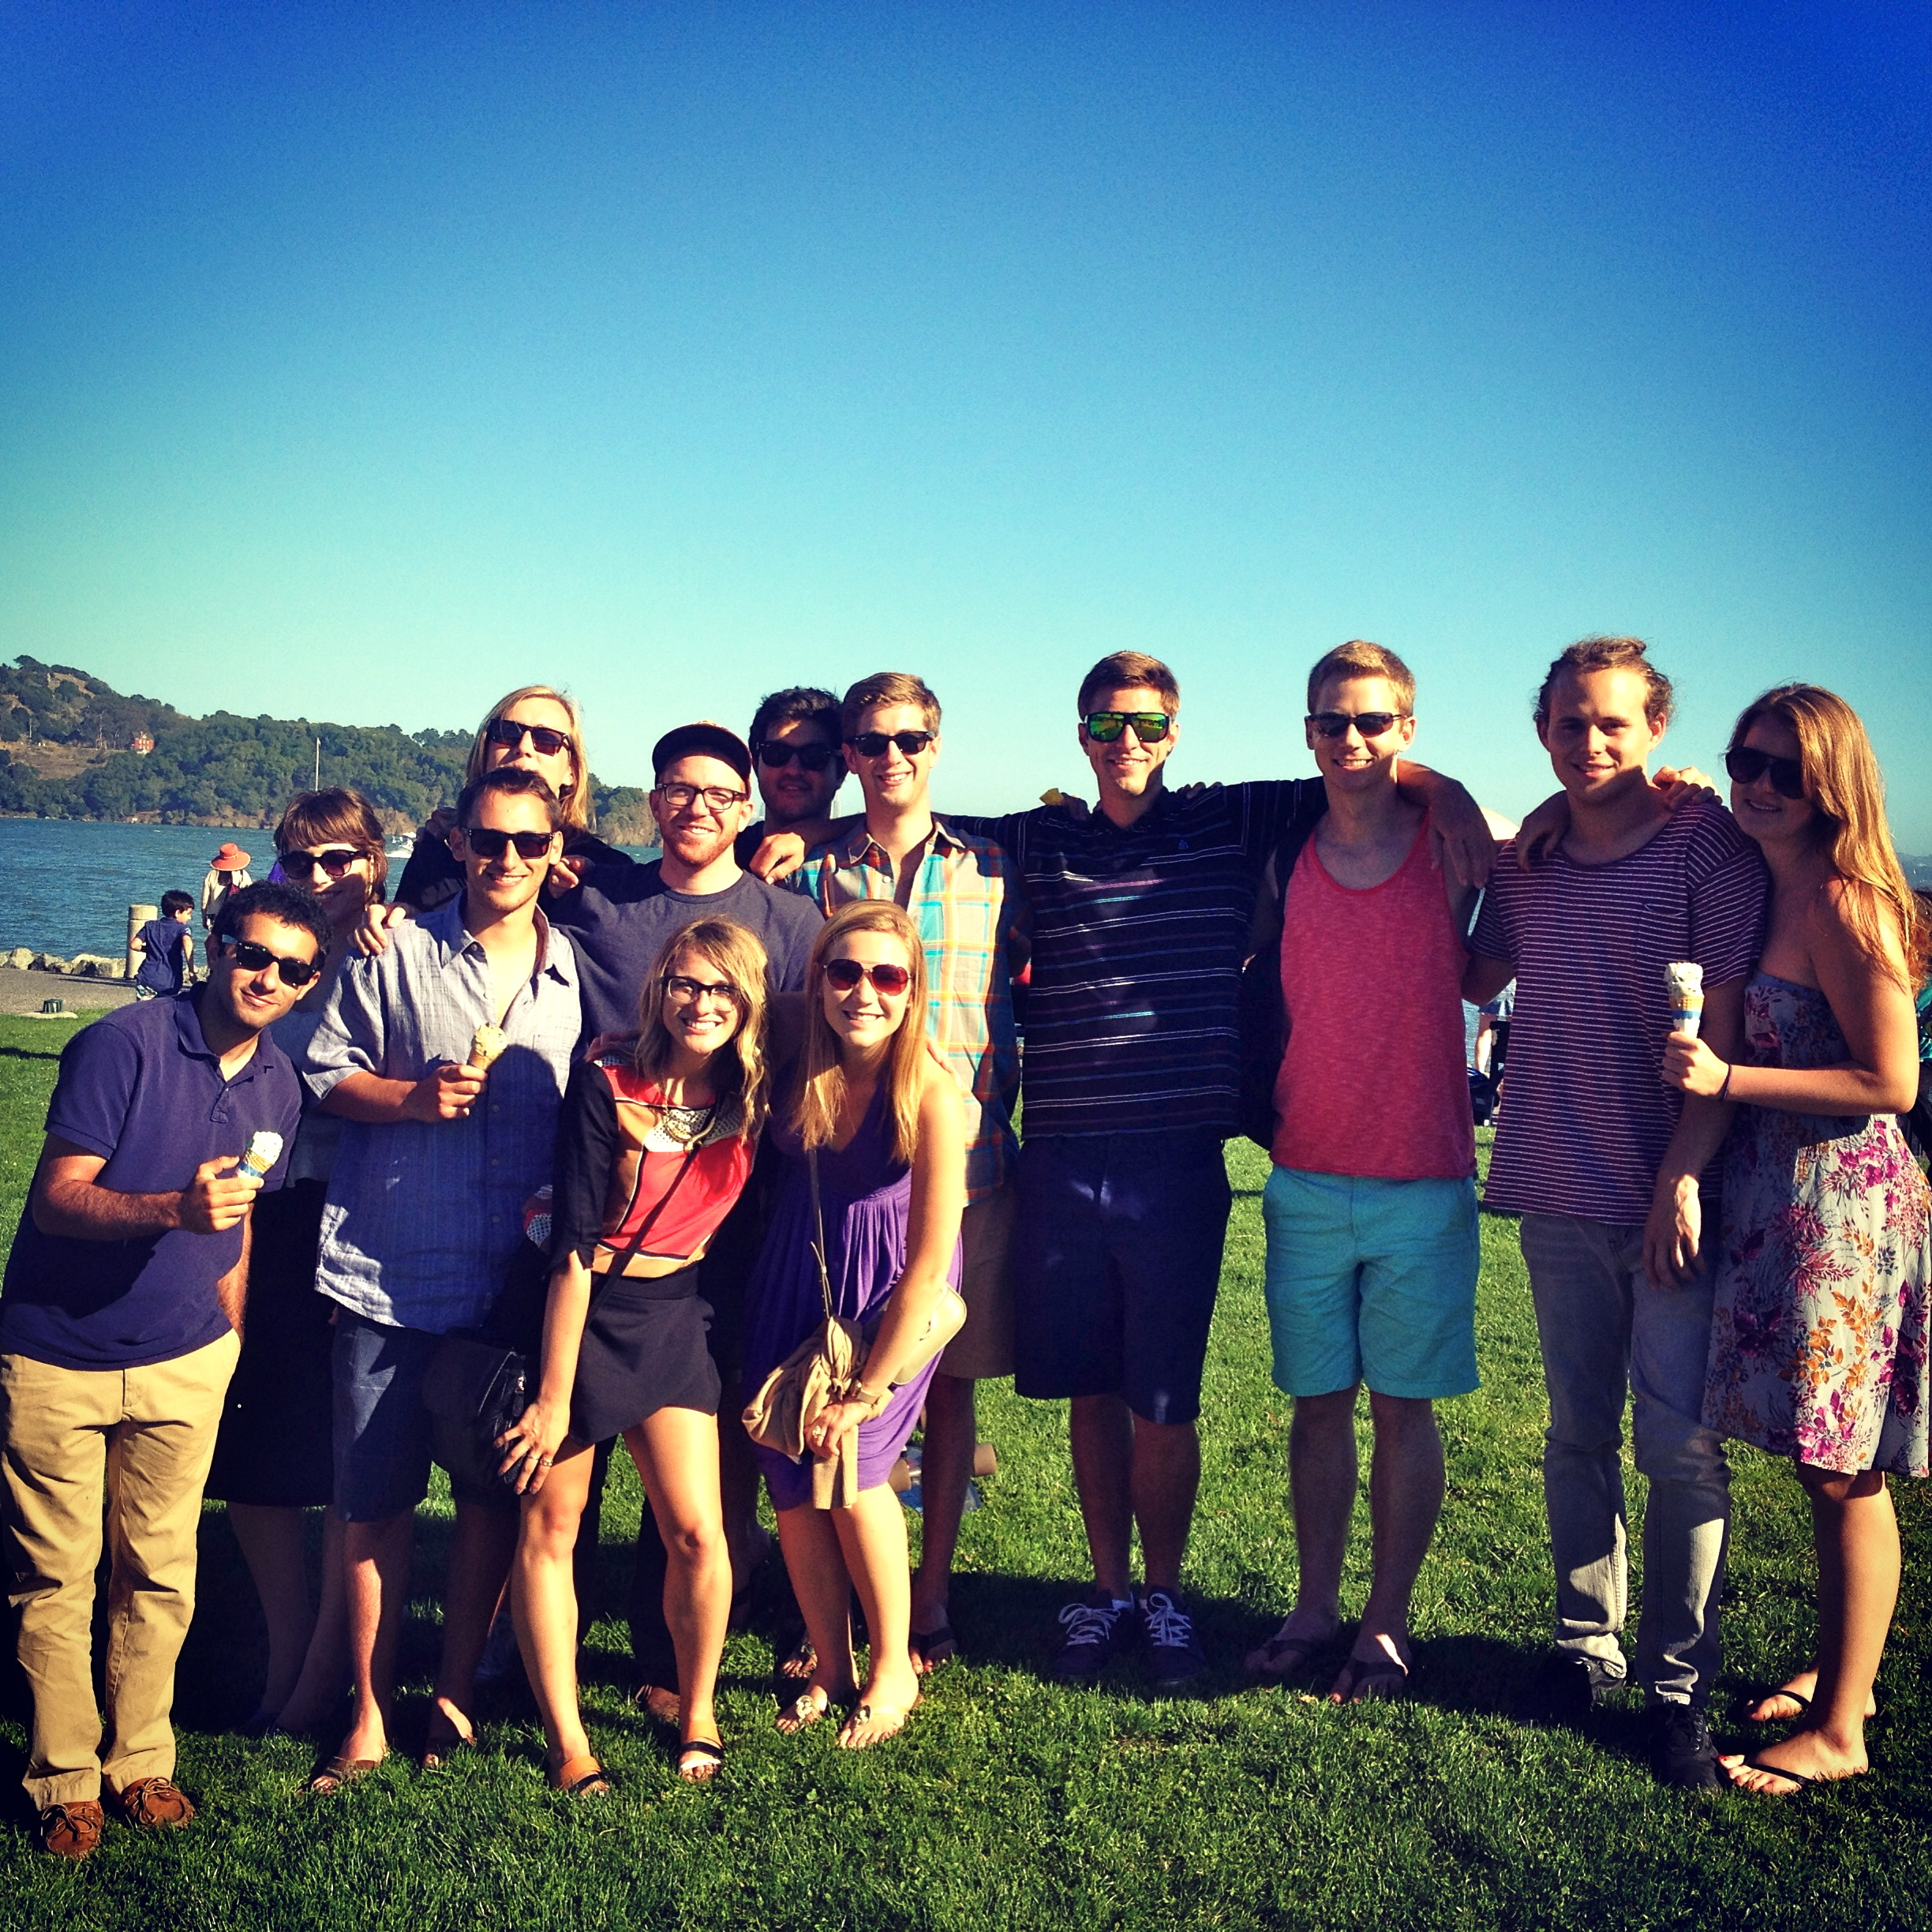 A little birthday trip to Tiburon! Happy Birthday, Scott!